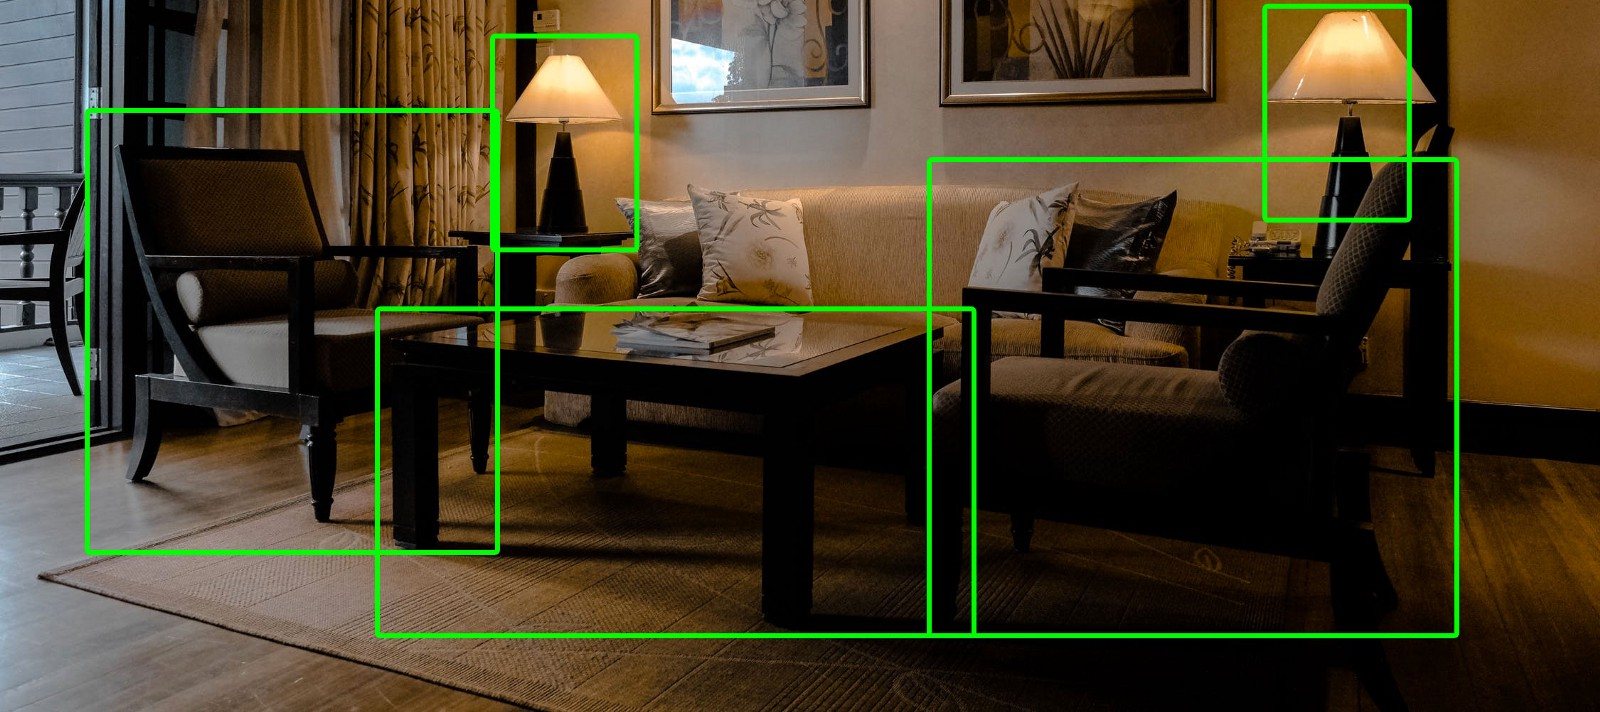 /using-object-detection-in-home-pictures-for-improving-price-estimation-c9f97a47e443 feature image